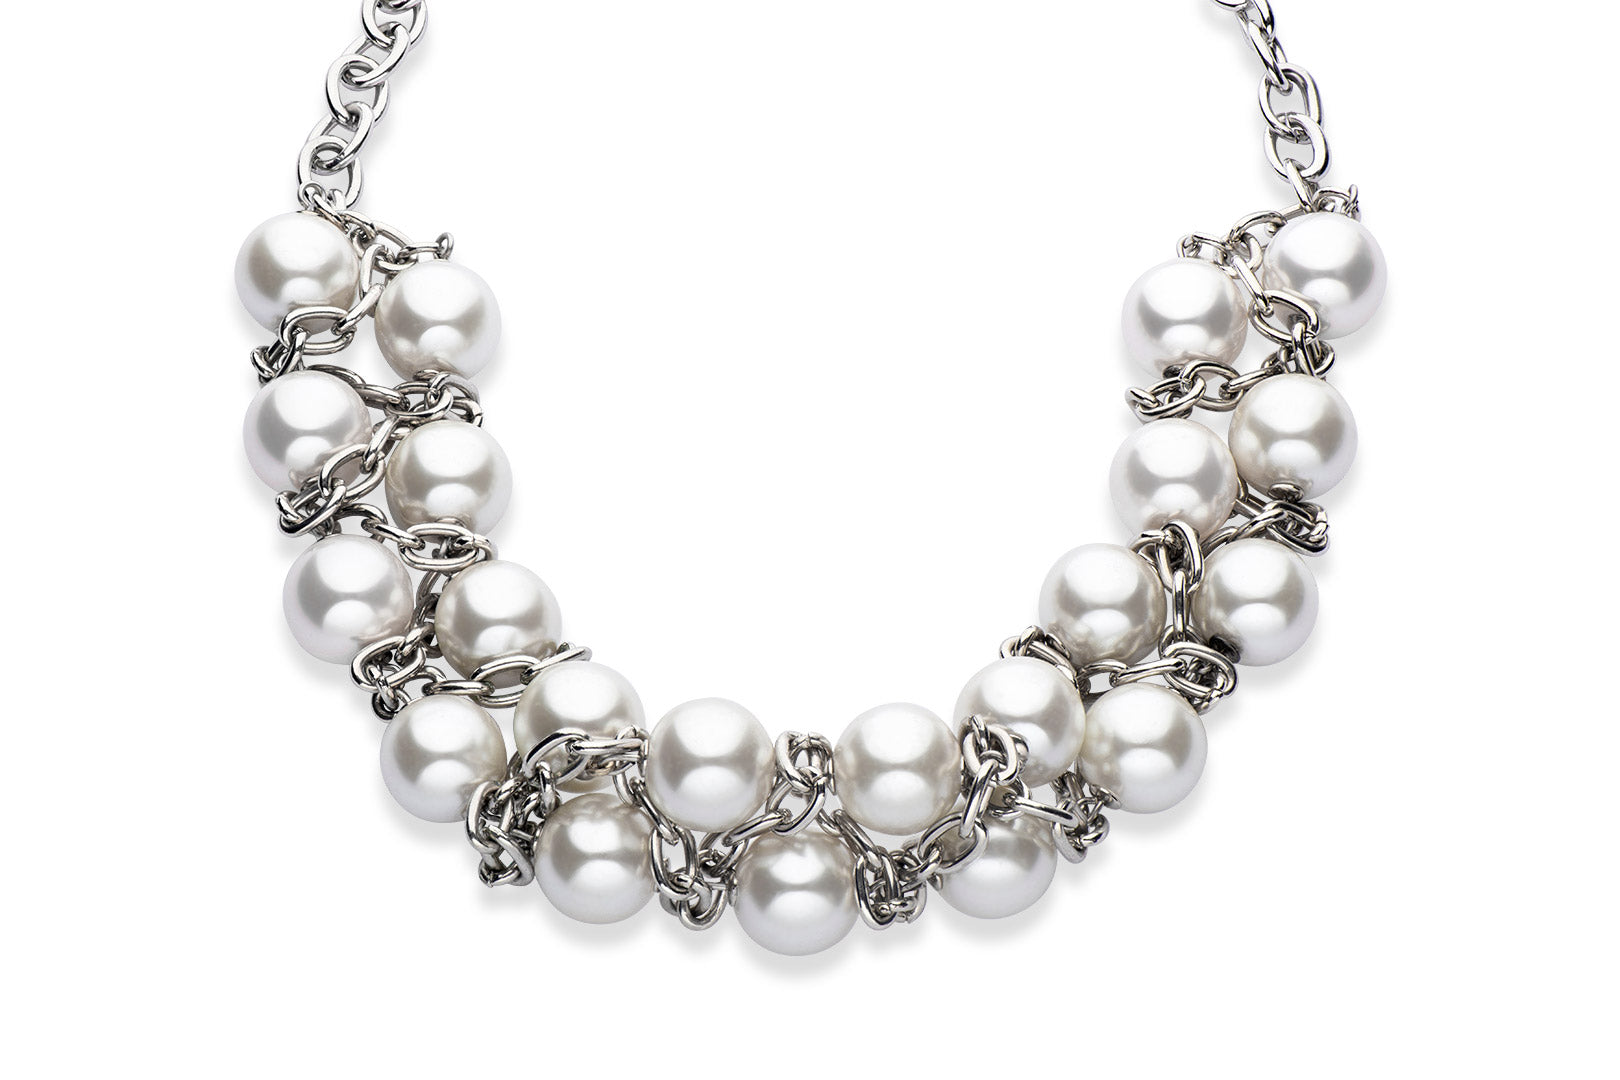 Silver and white Swarovski crystal pearl necklace